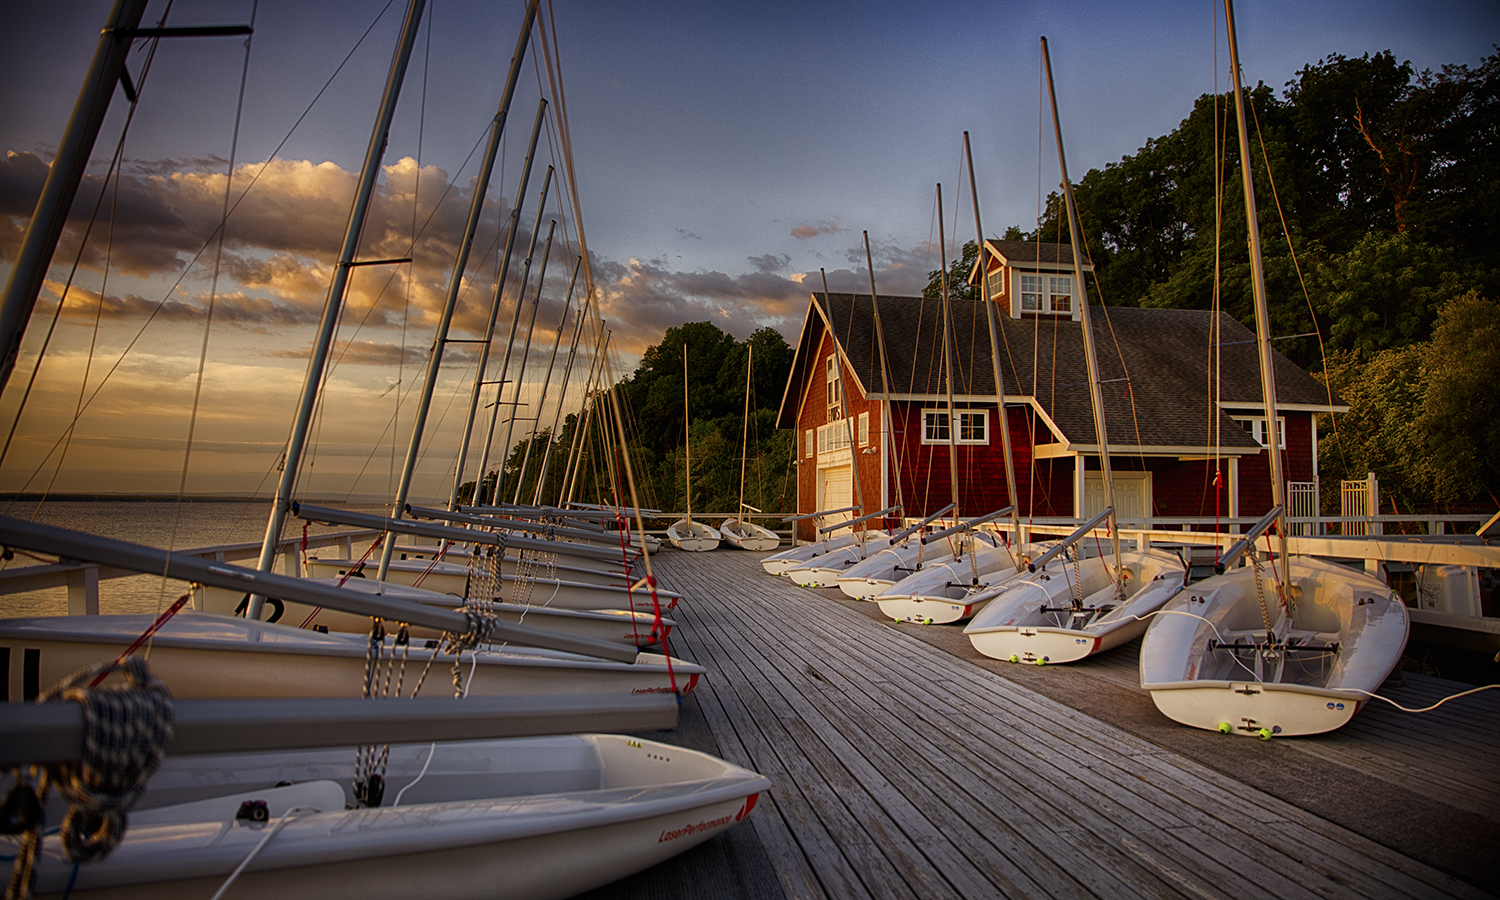 The HWS Bozzuto Boathouse at sunrise.